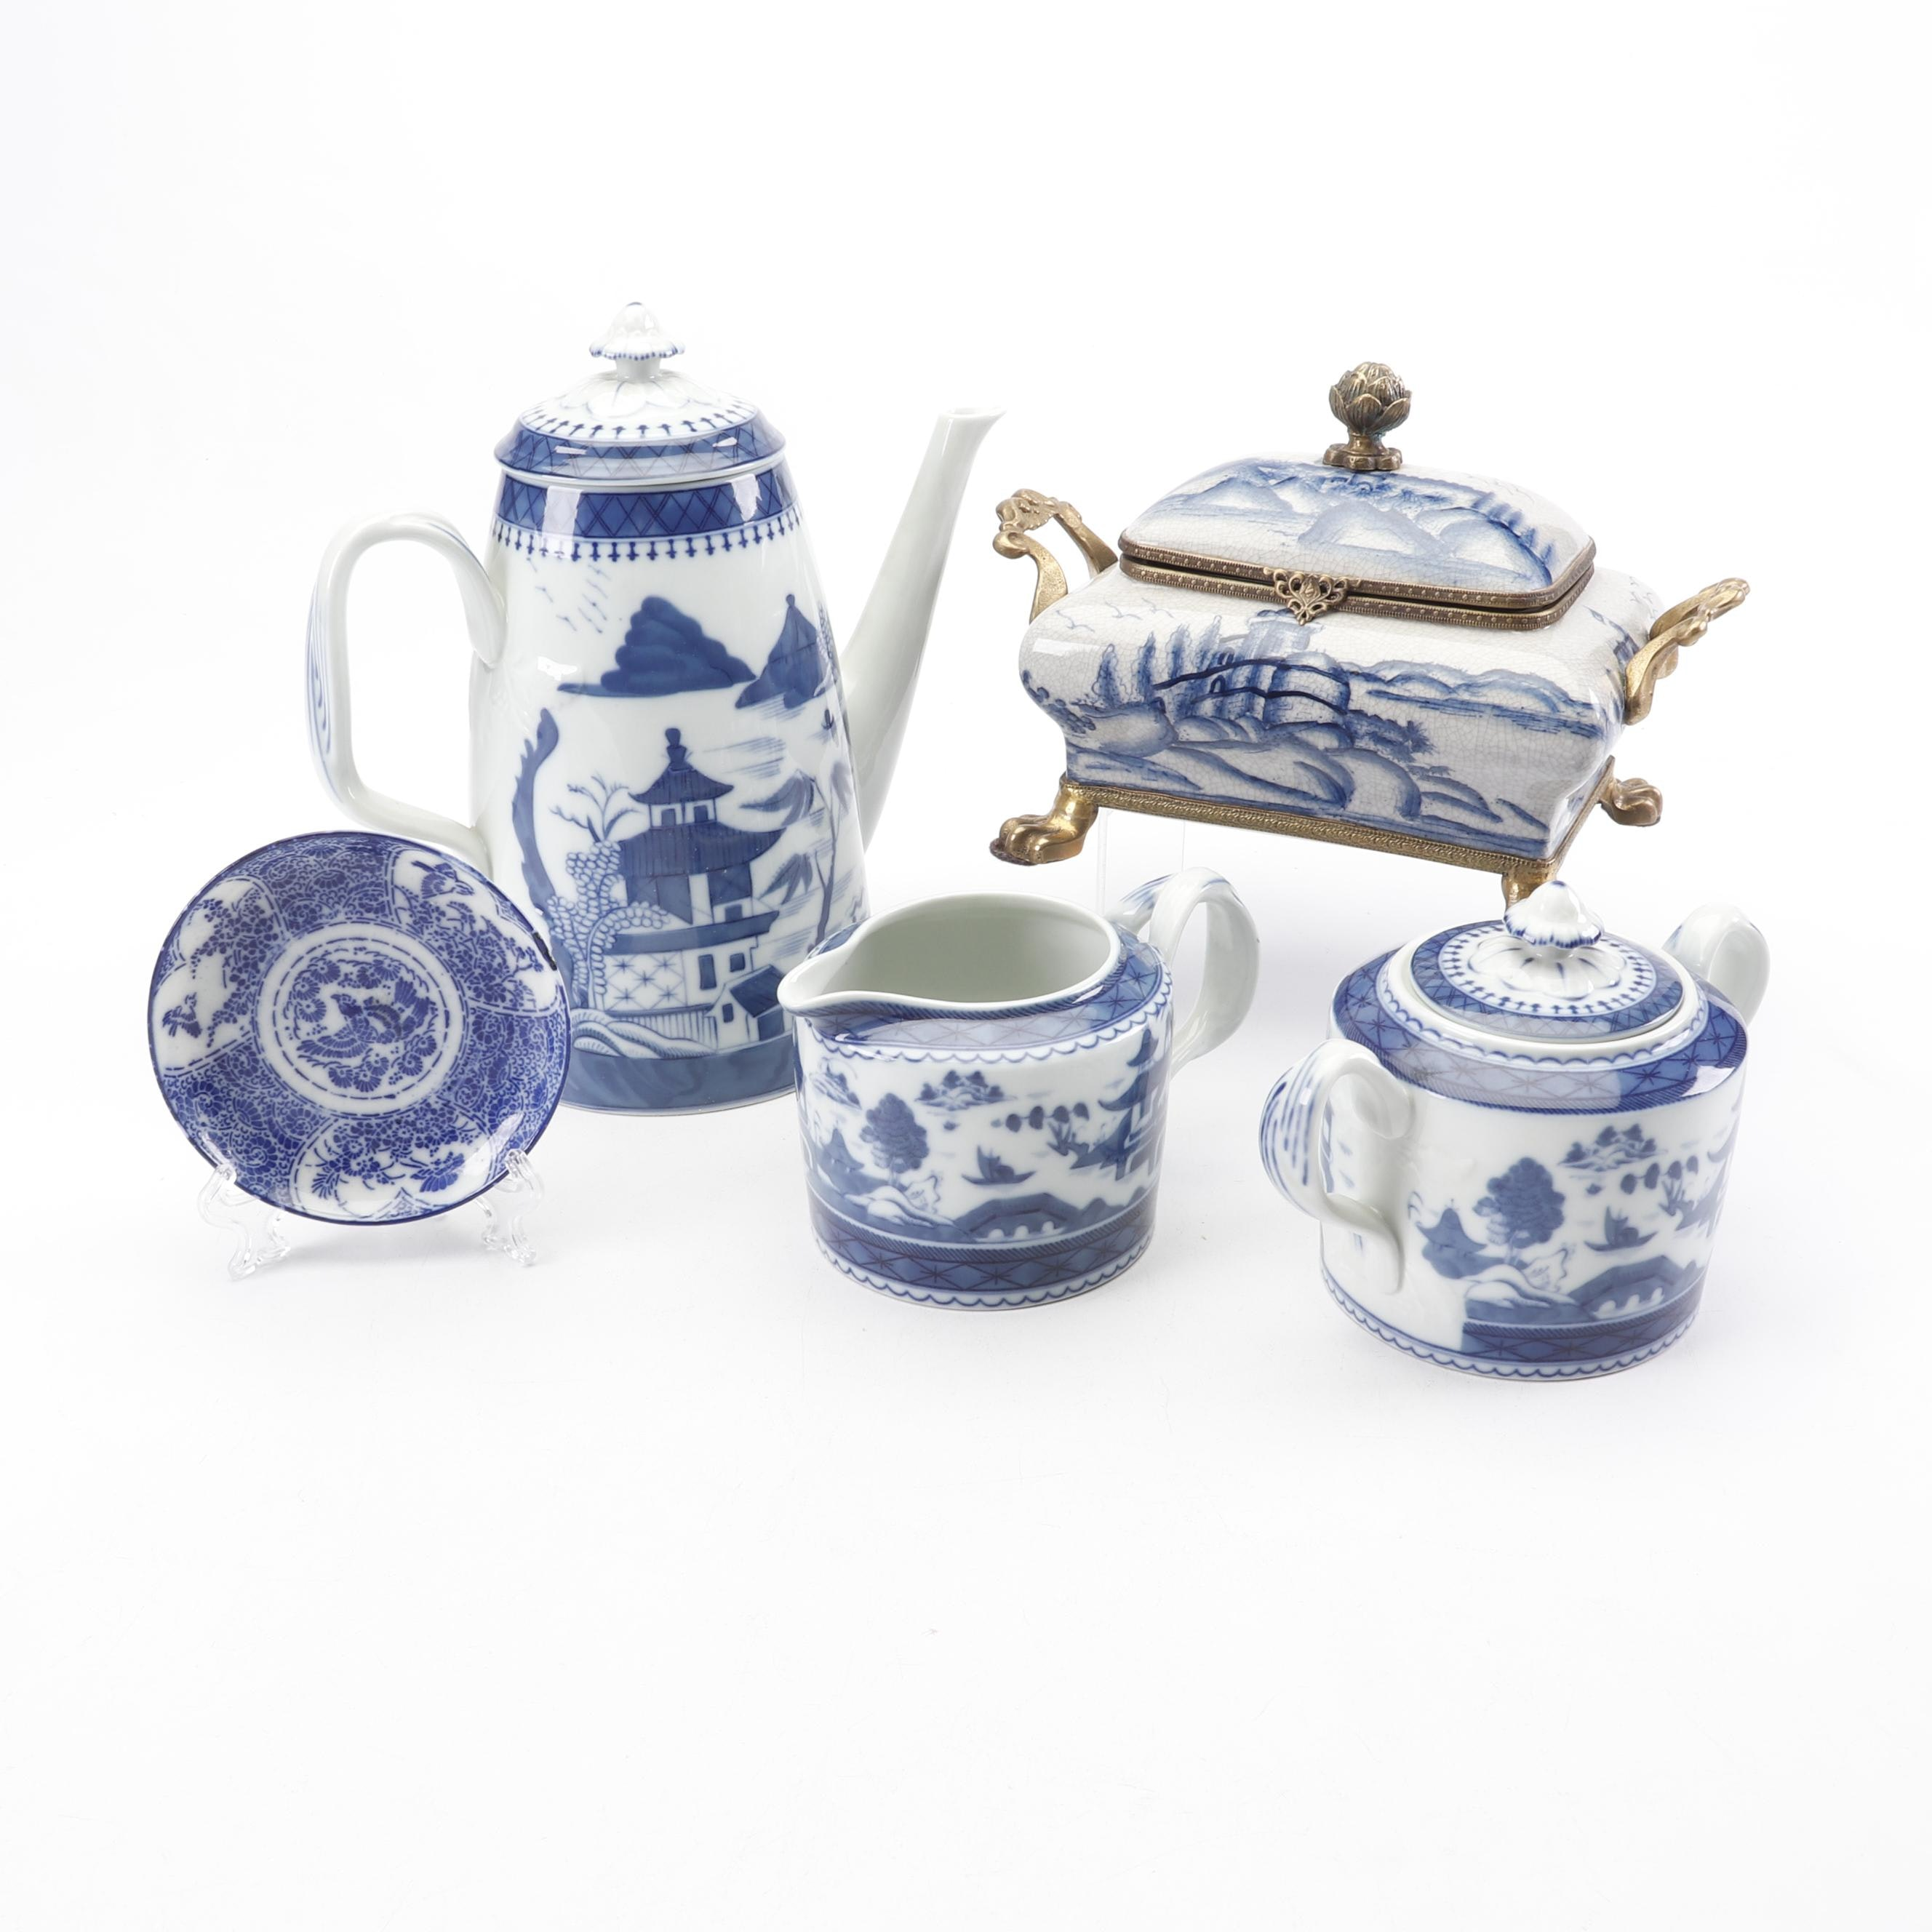 Dominic Porcelain Box with Vista Alegre Tea Set in the Chinoiserie Style